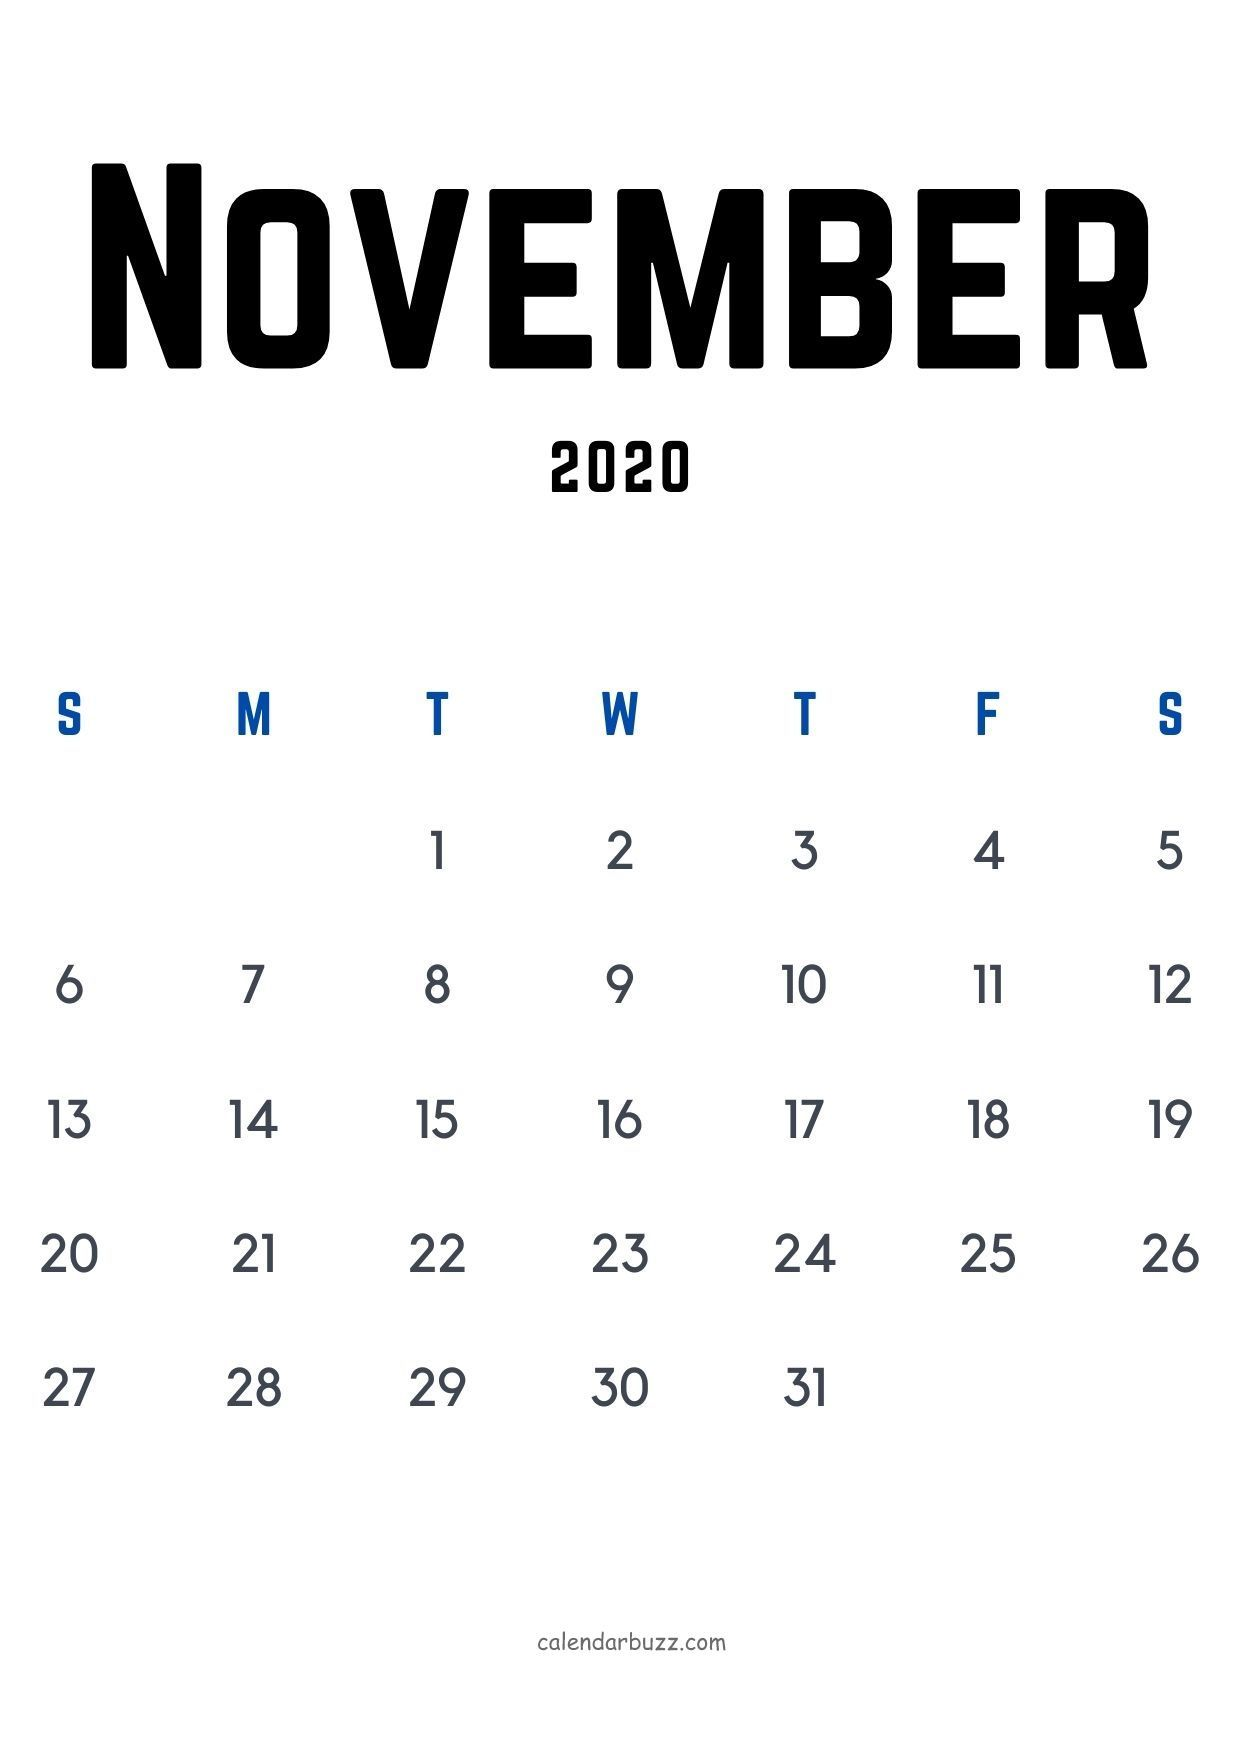 Free download November 2020 a4 calendar in vertical layout